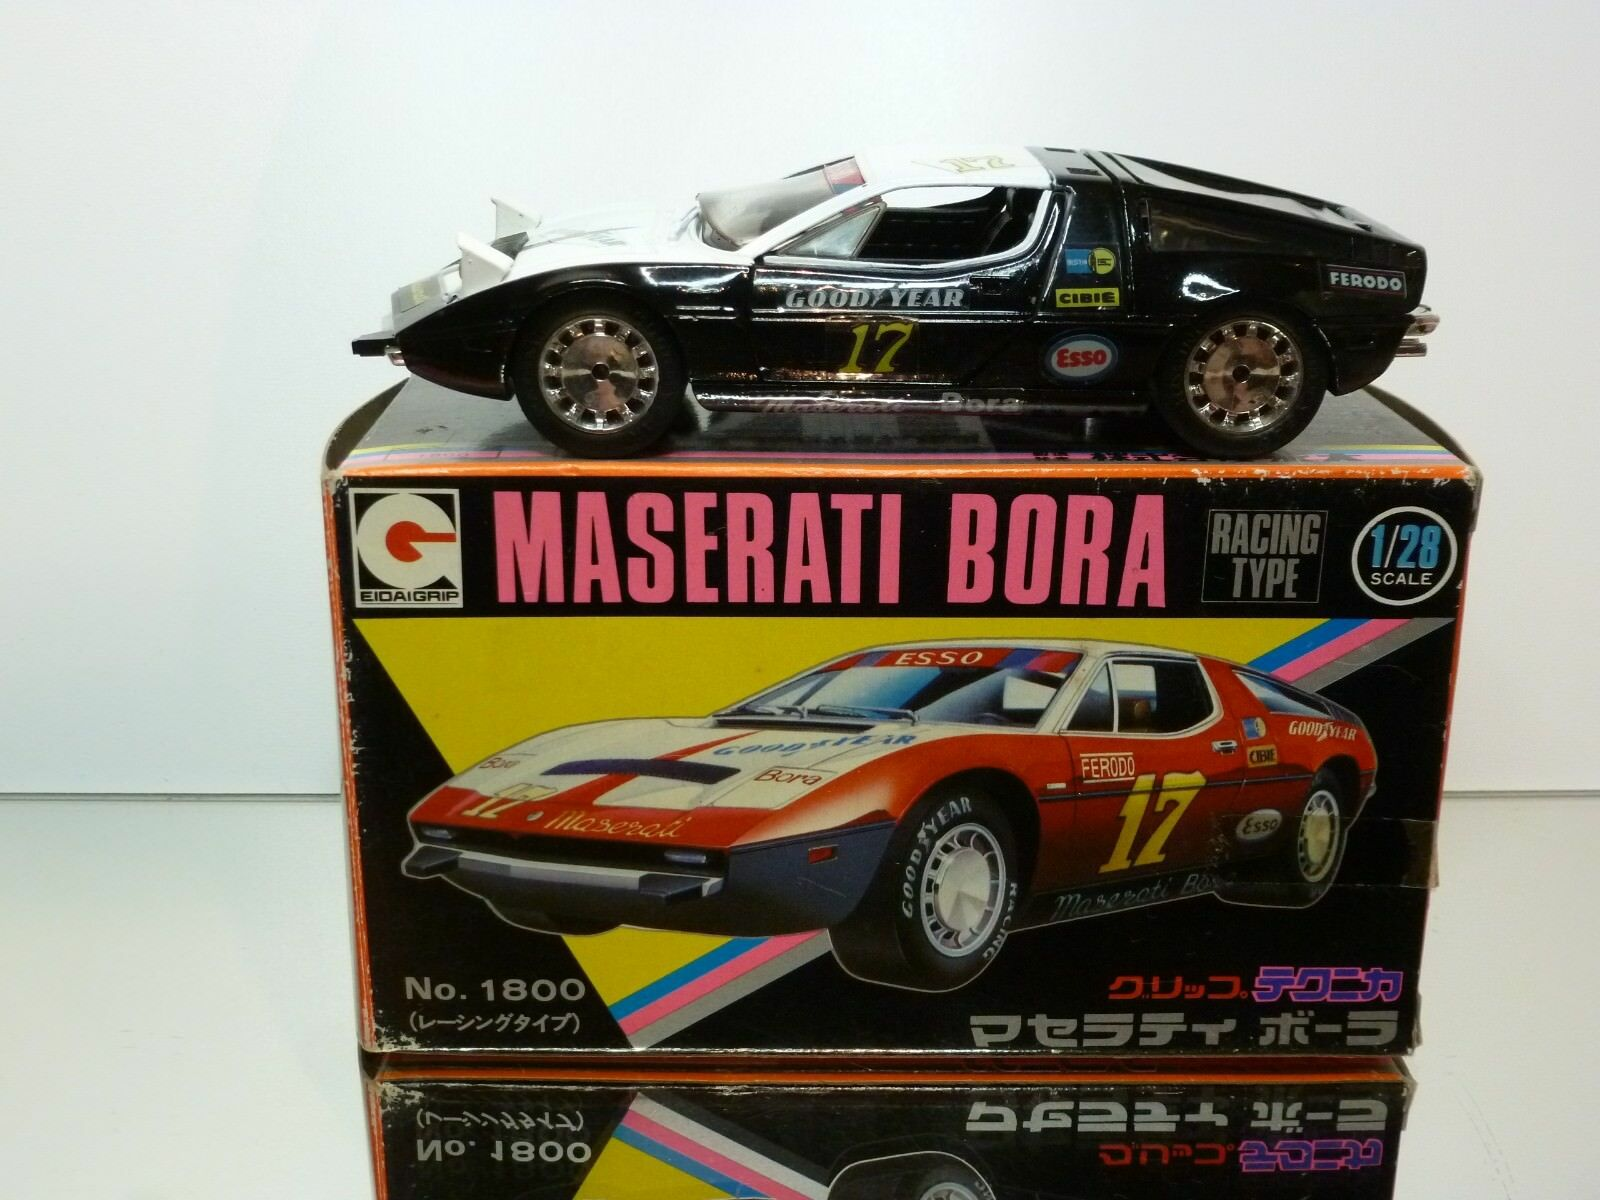 EIDAI GRIP 56 MASERATI BORA - GOOD YEAR  17 -  1 28 RARE- GOOD CONDITION IN BOX